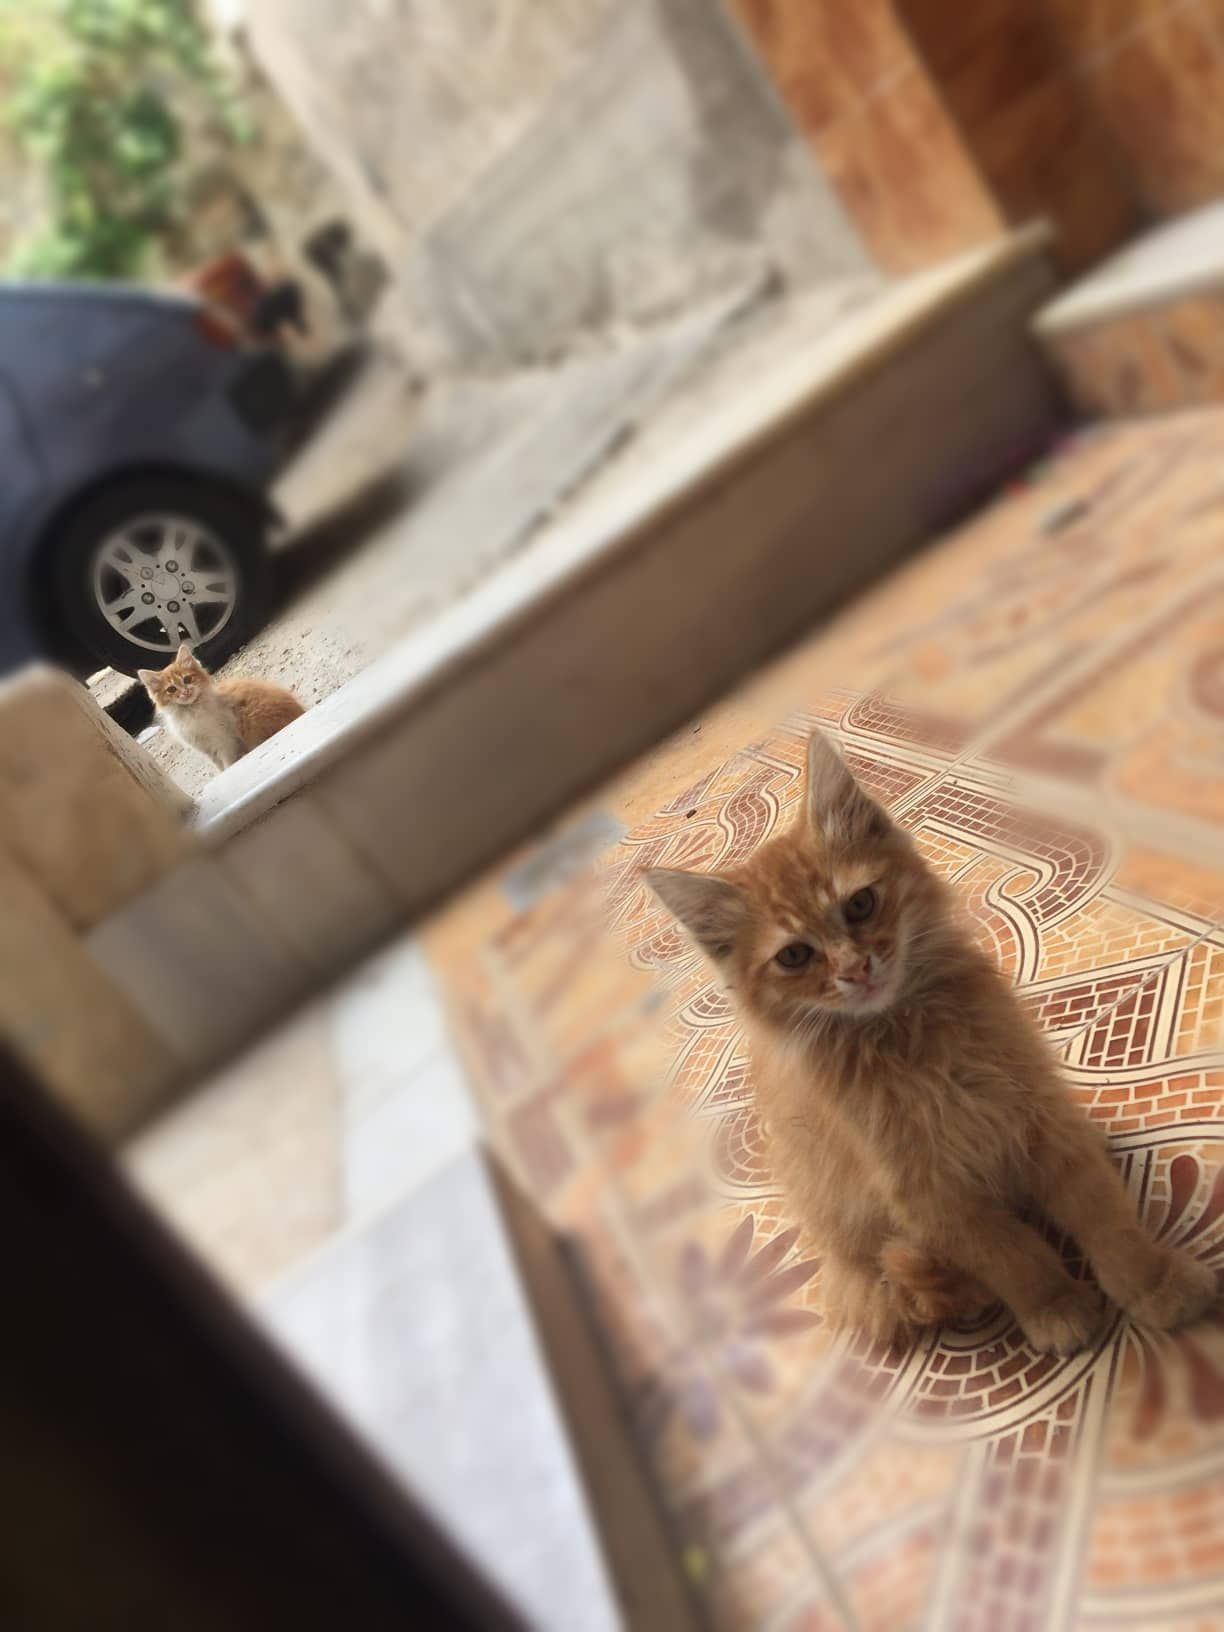 Good Morning From These Cute Cats Damascus Syria Cats Damascus Syria Cat S Damascus